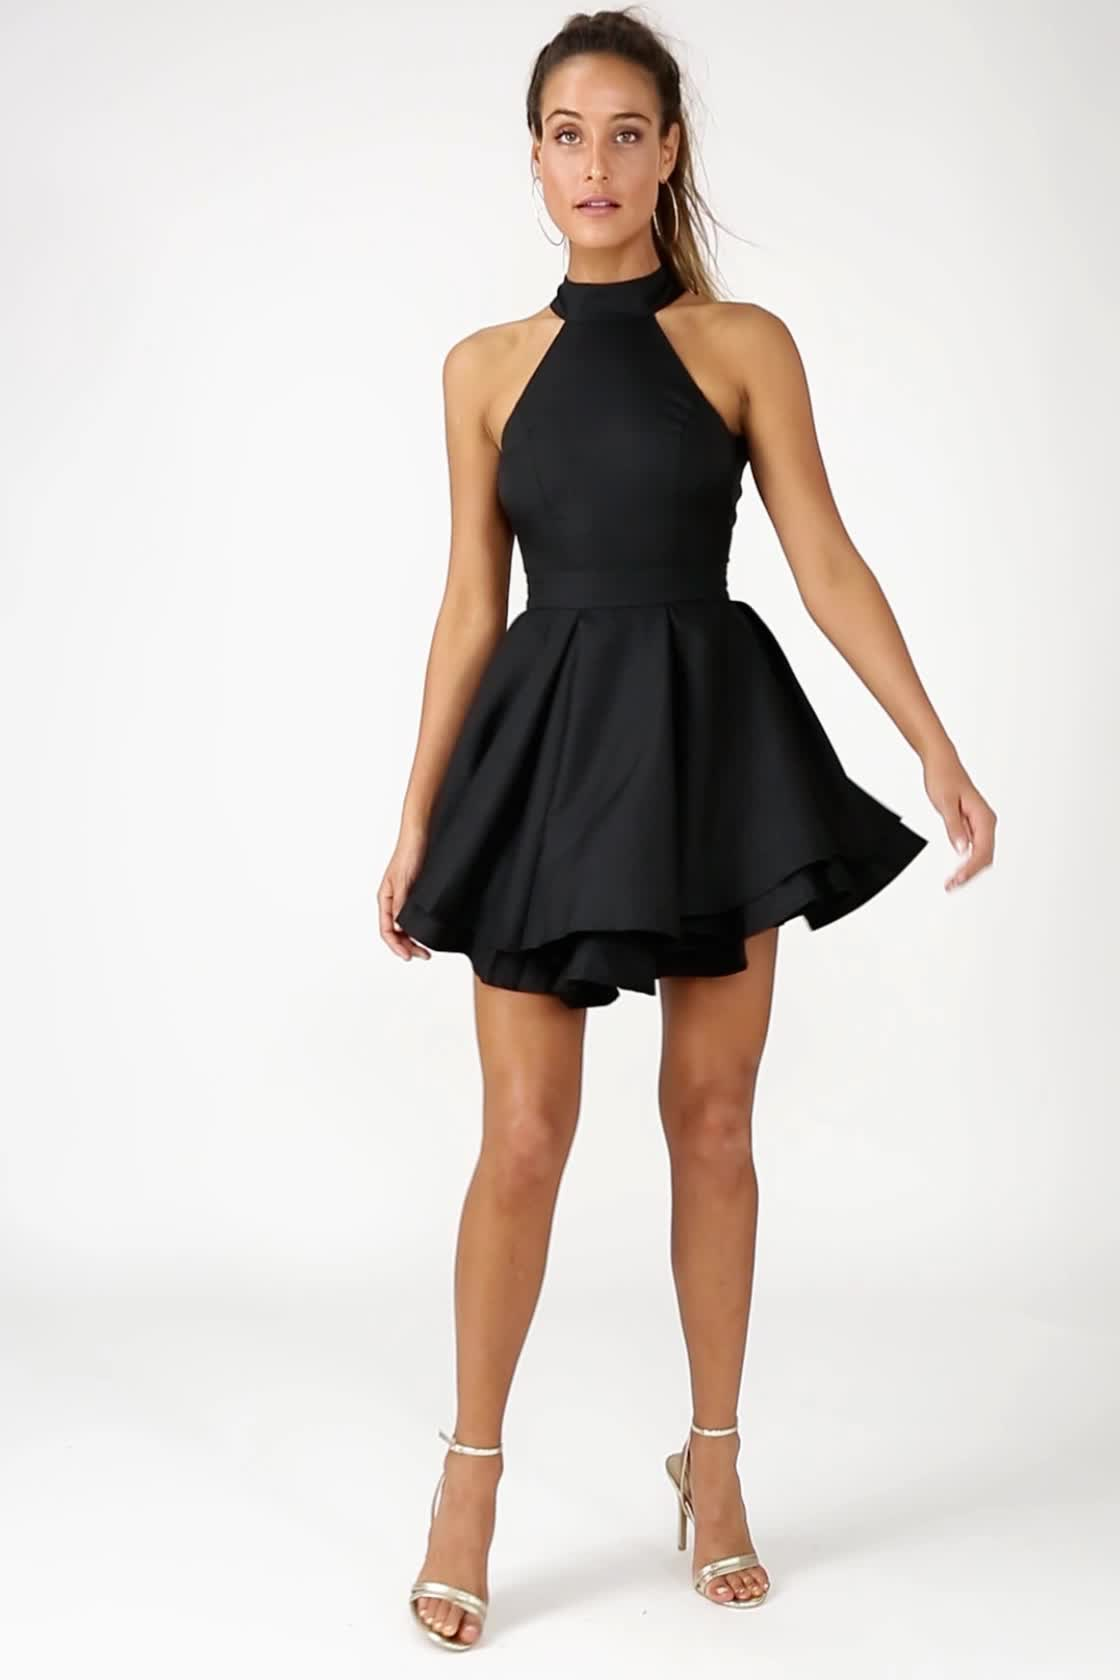 Cute Black Skater Dress - LBD - Homecoming Dress d225cd2c1